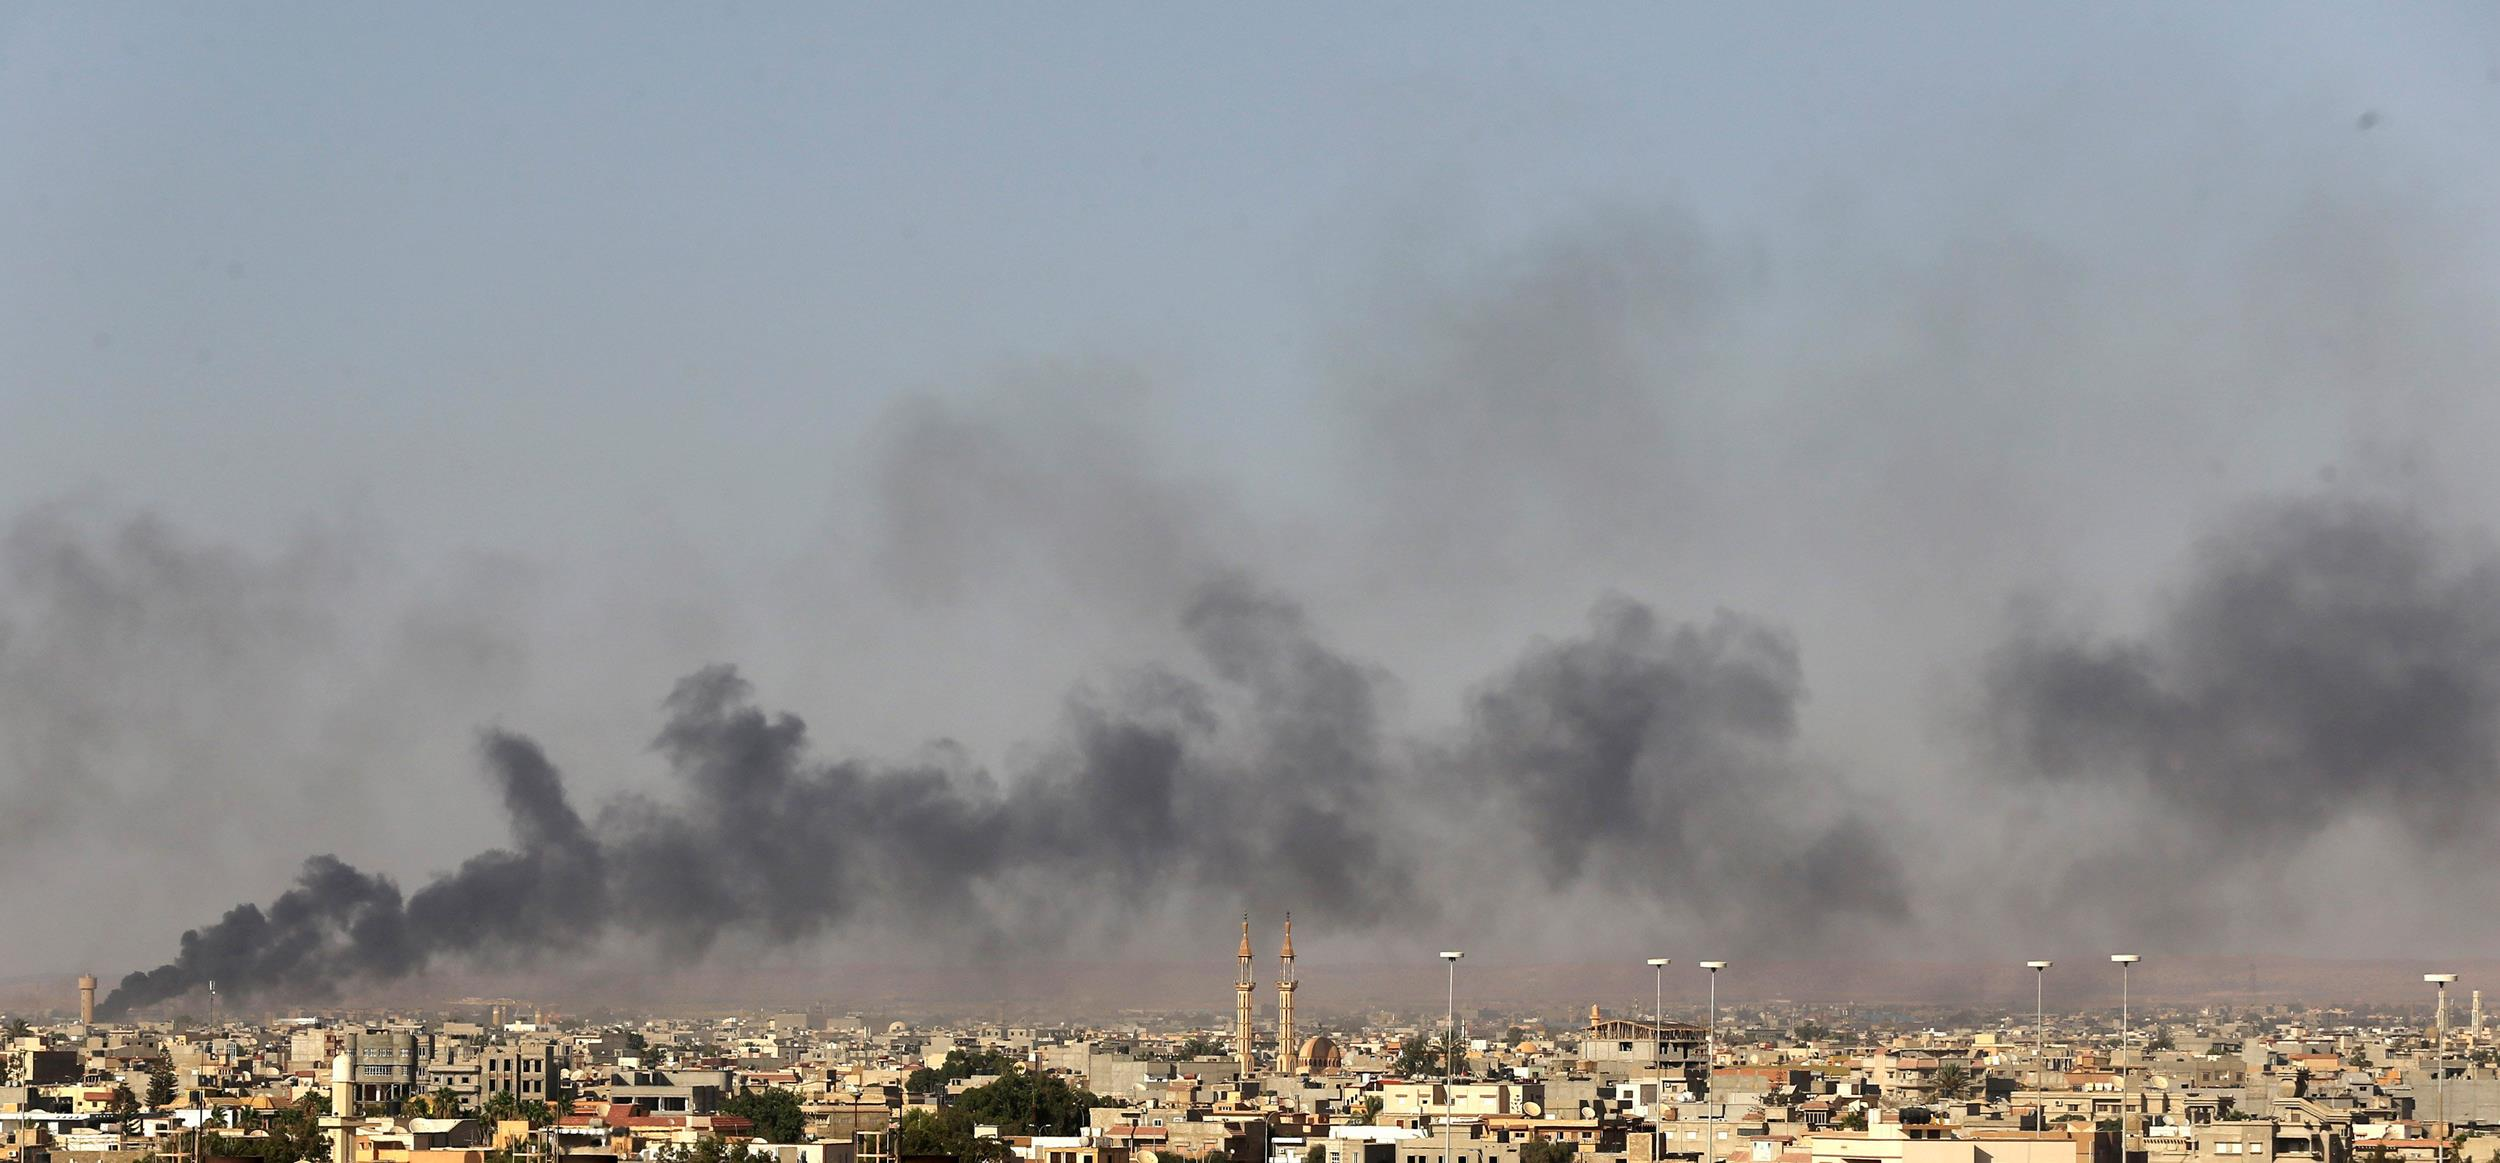 Image: Black plumes of smoke is seen in the vicinity of Camp Thunderbolt, after clashes between militants, former rebel fighters and government forces in Benghazi